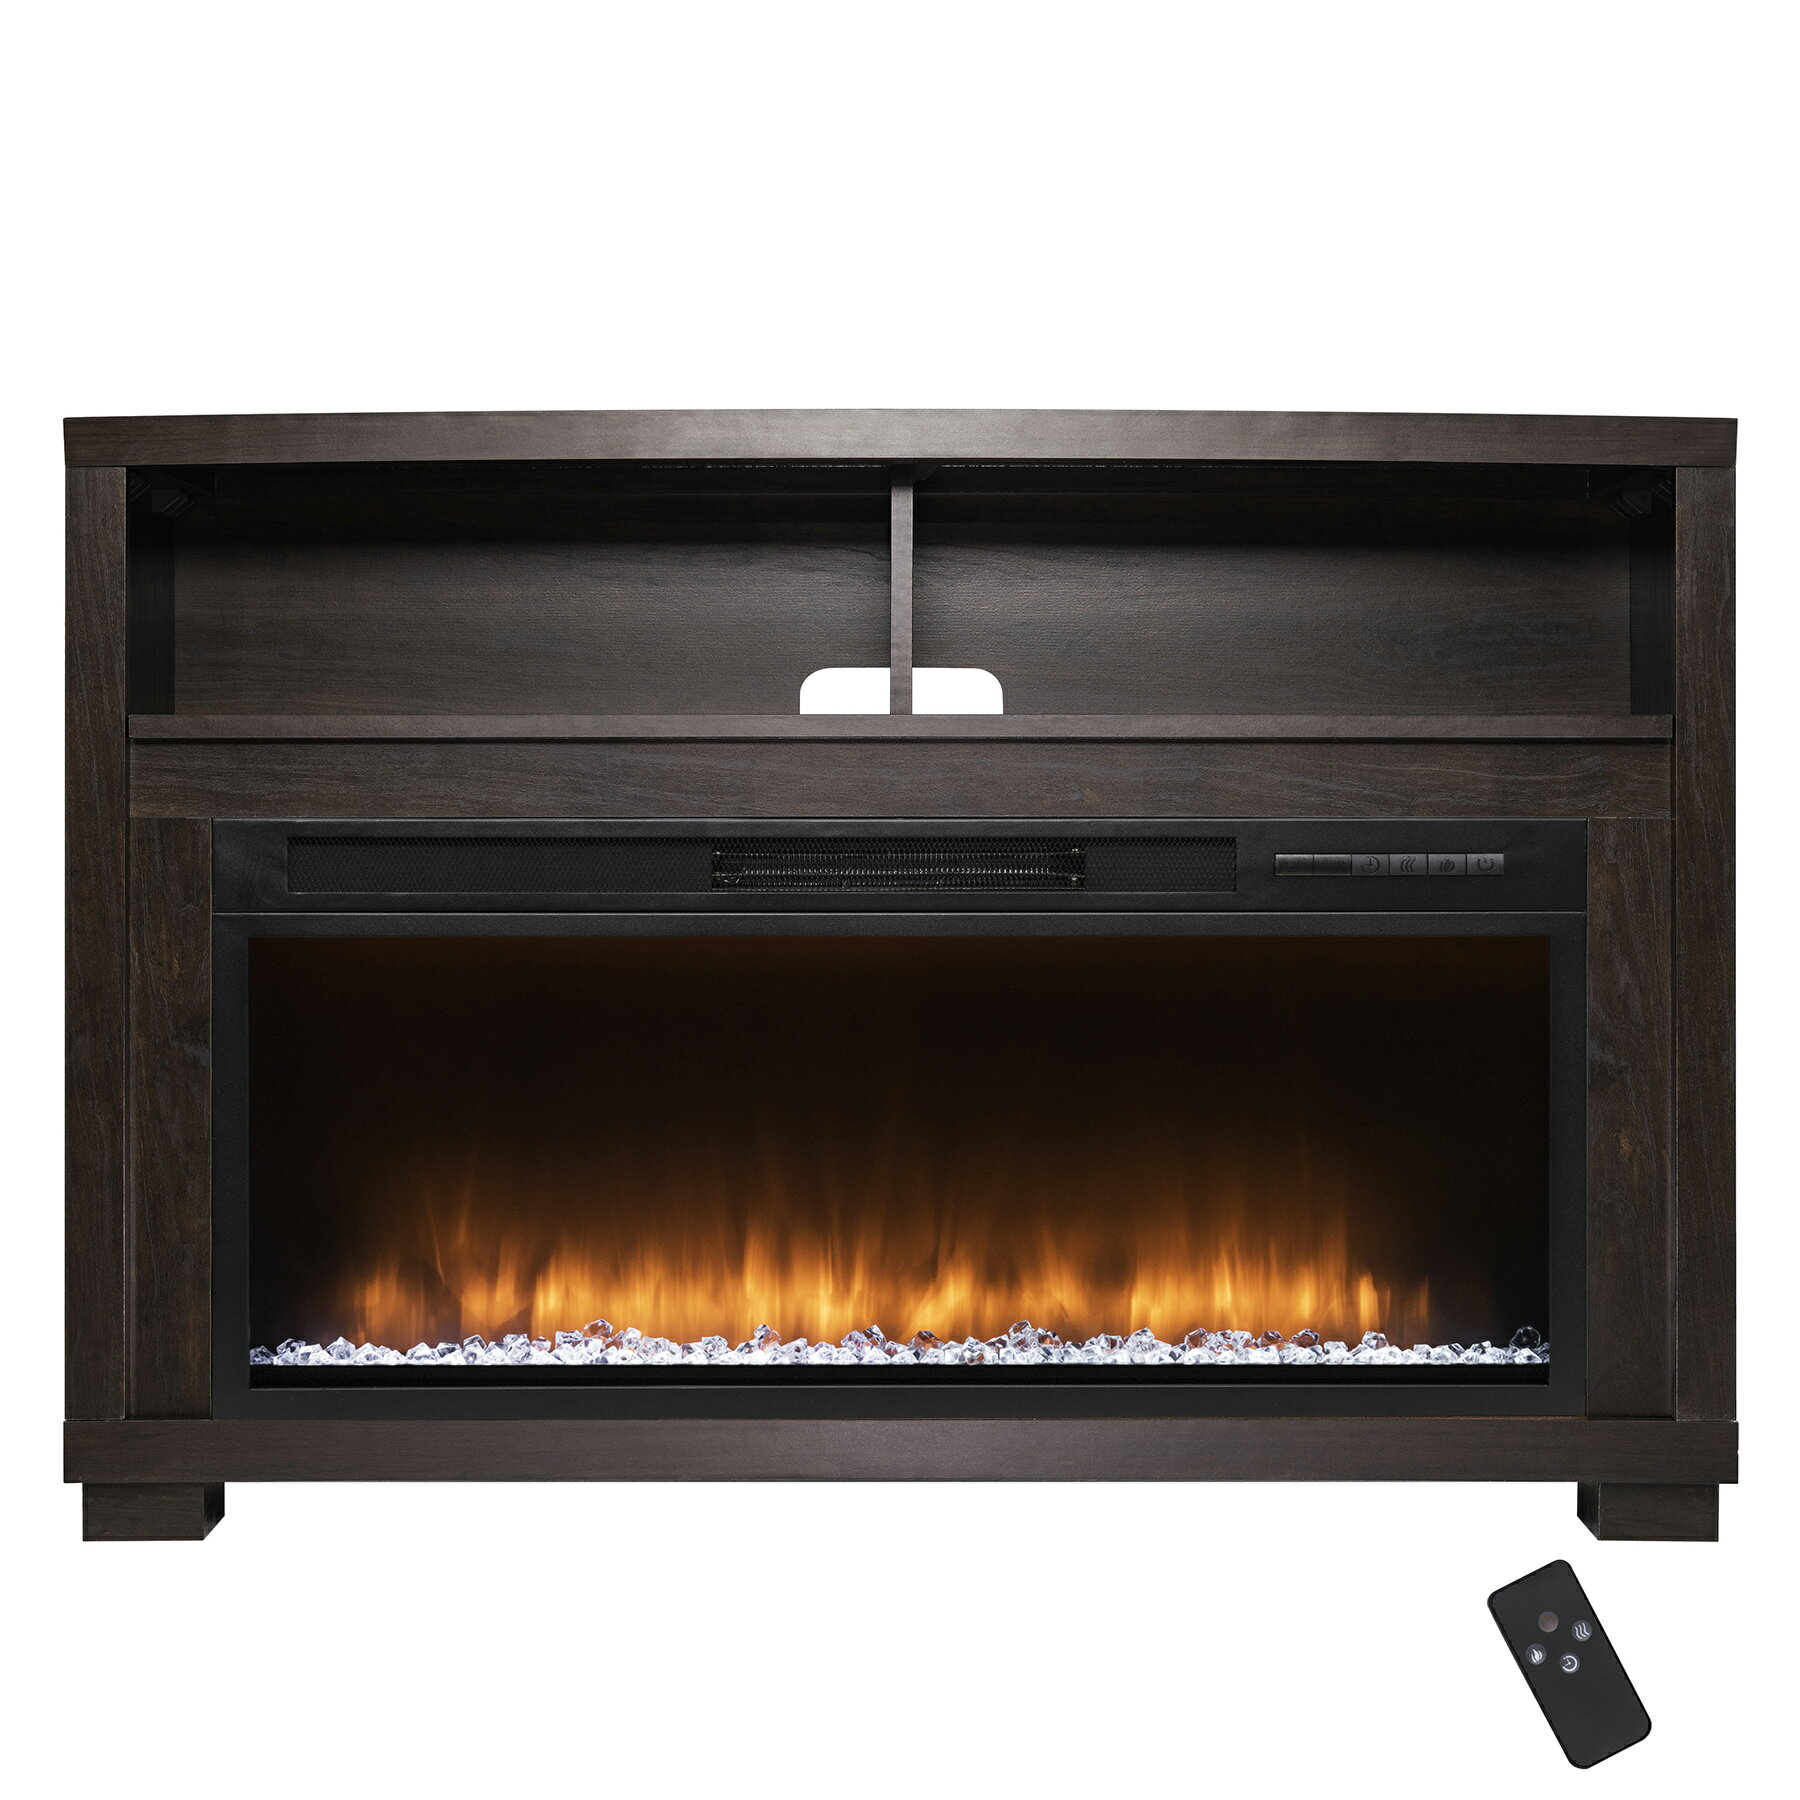 "AKDY 44"" Freestanding Brown Wooden Electric Fireplace Heater w/ Remote 0"